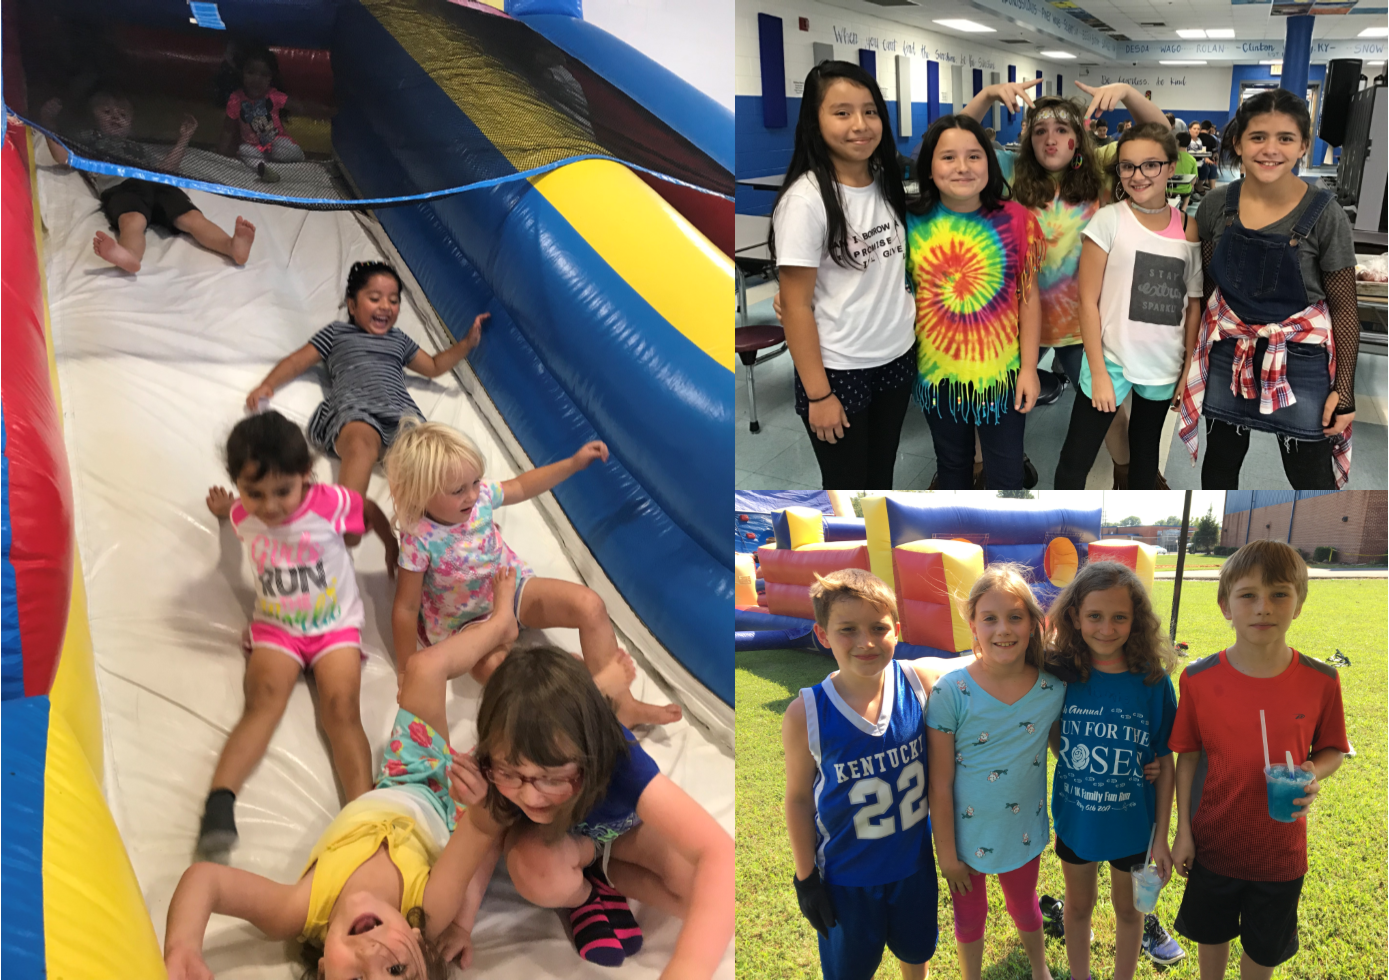 Thursday, September 20th was High Attendance Day in Kentucky Schools.  Clinton County students celebrated with lots of fun activities!